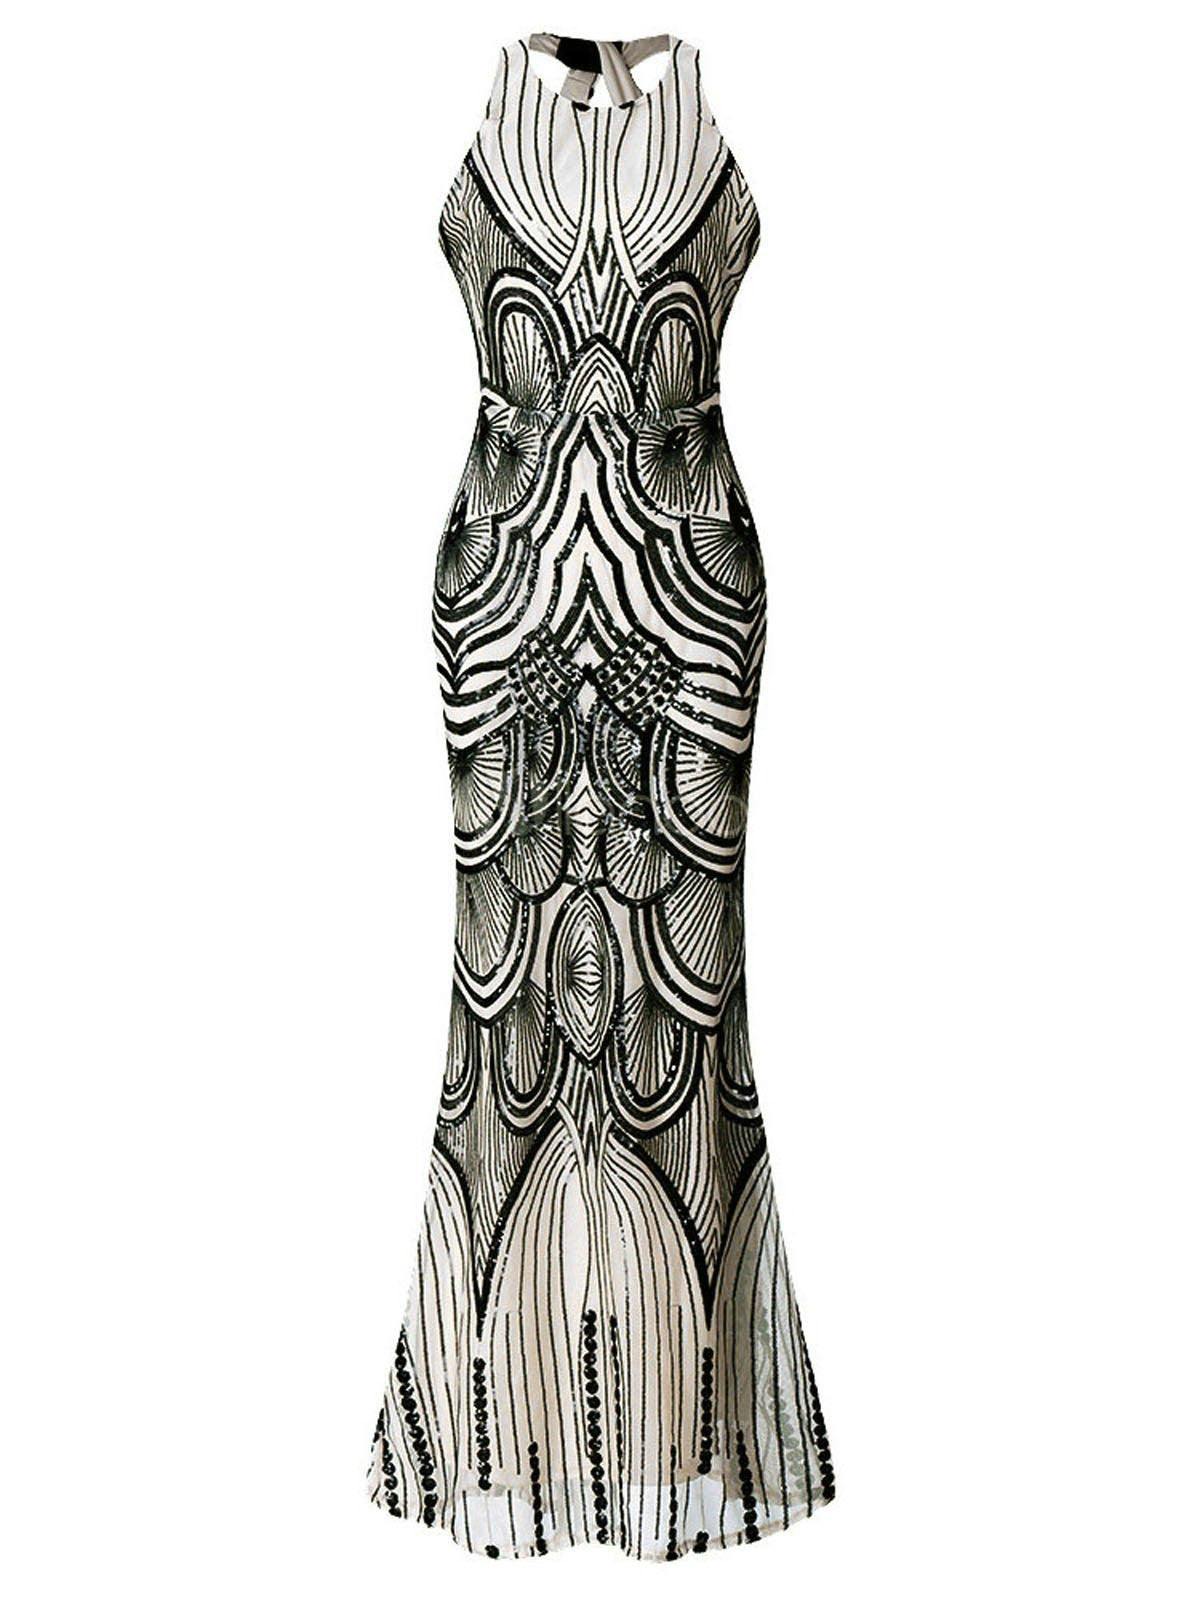 7f68a9ba377 1920s Sequin Backless Formal Dress – Retro Stage - Chic Vintage ...